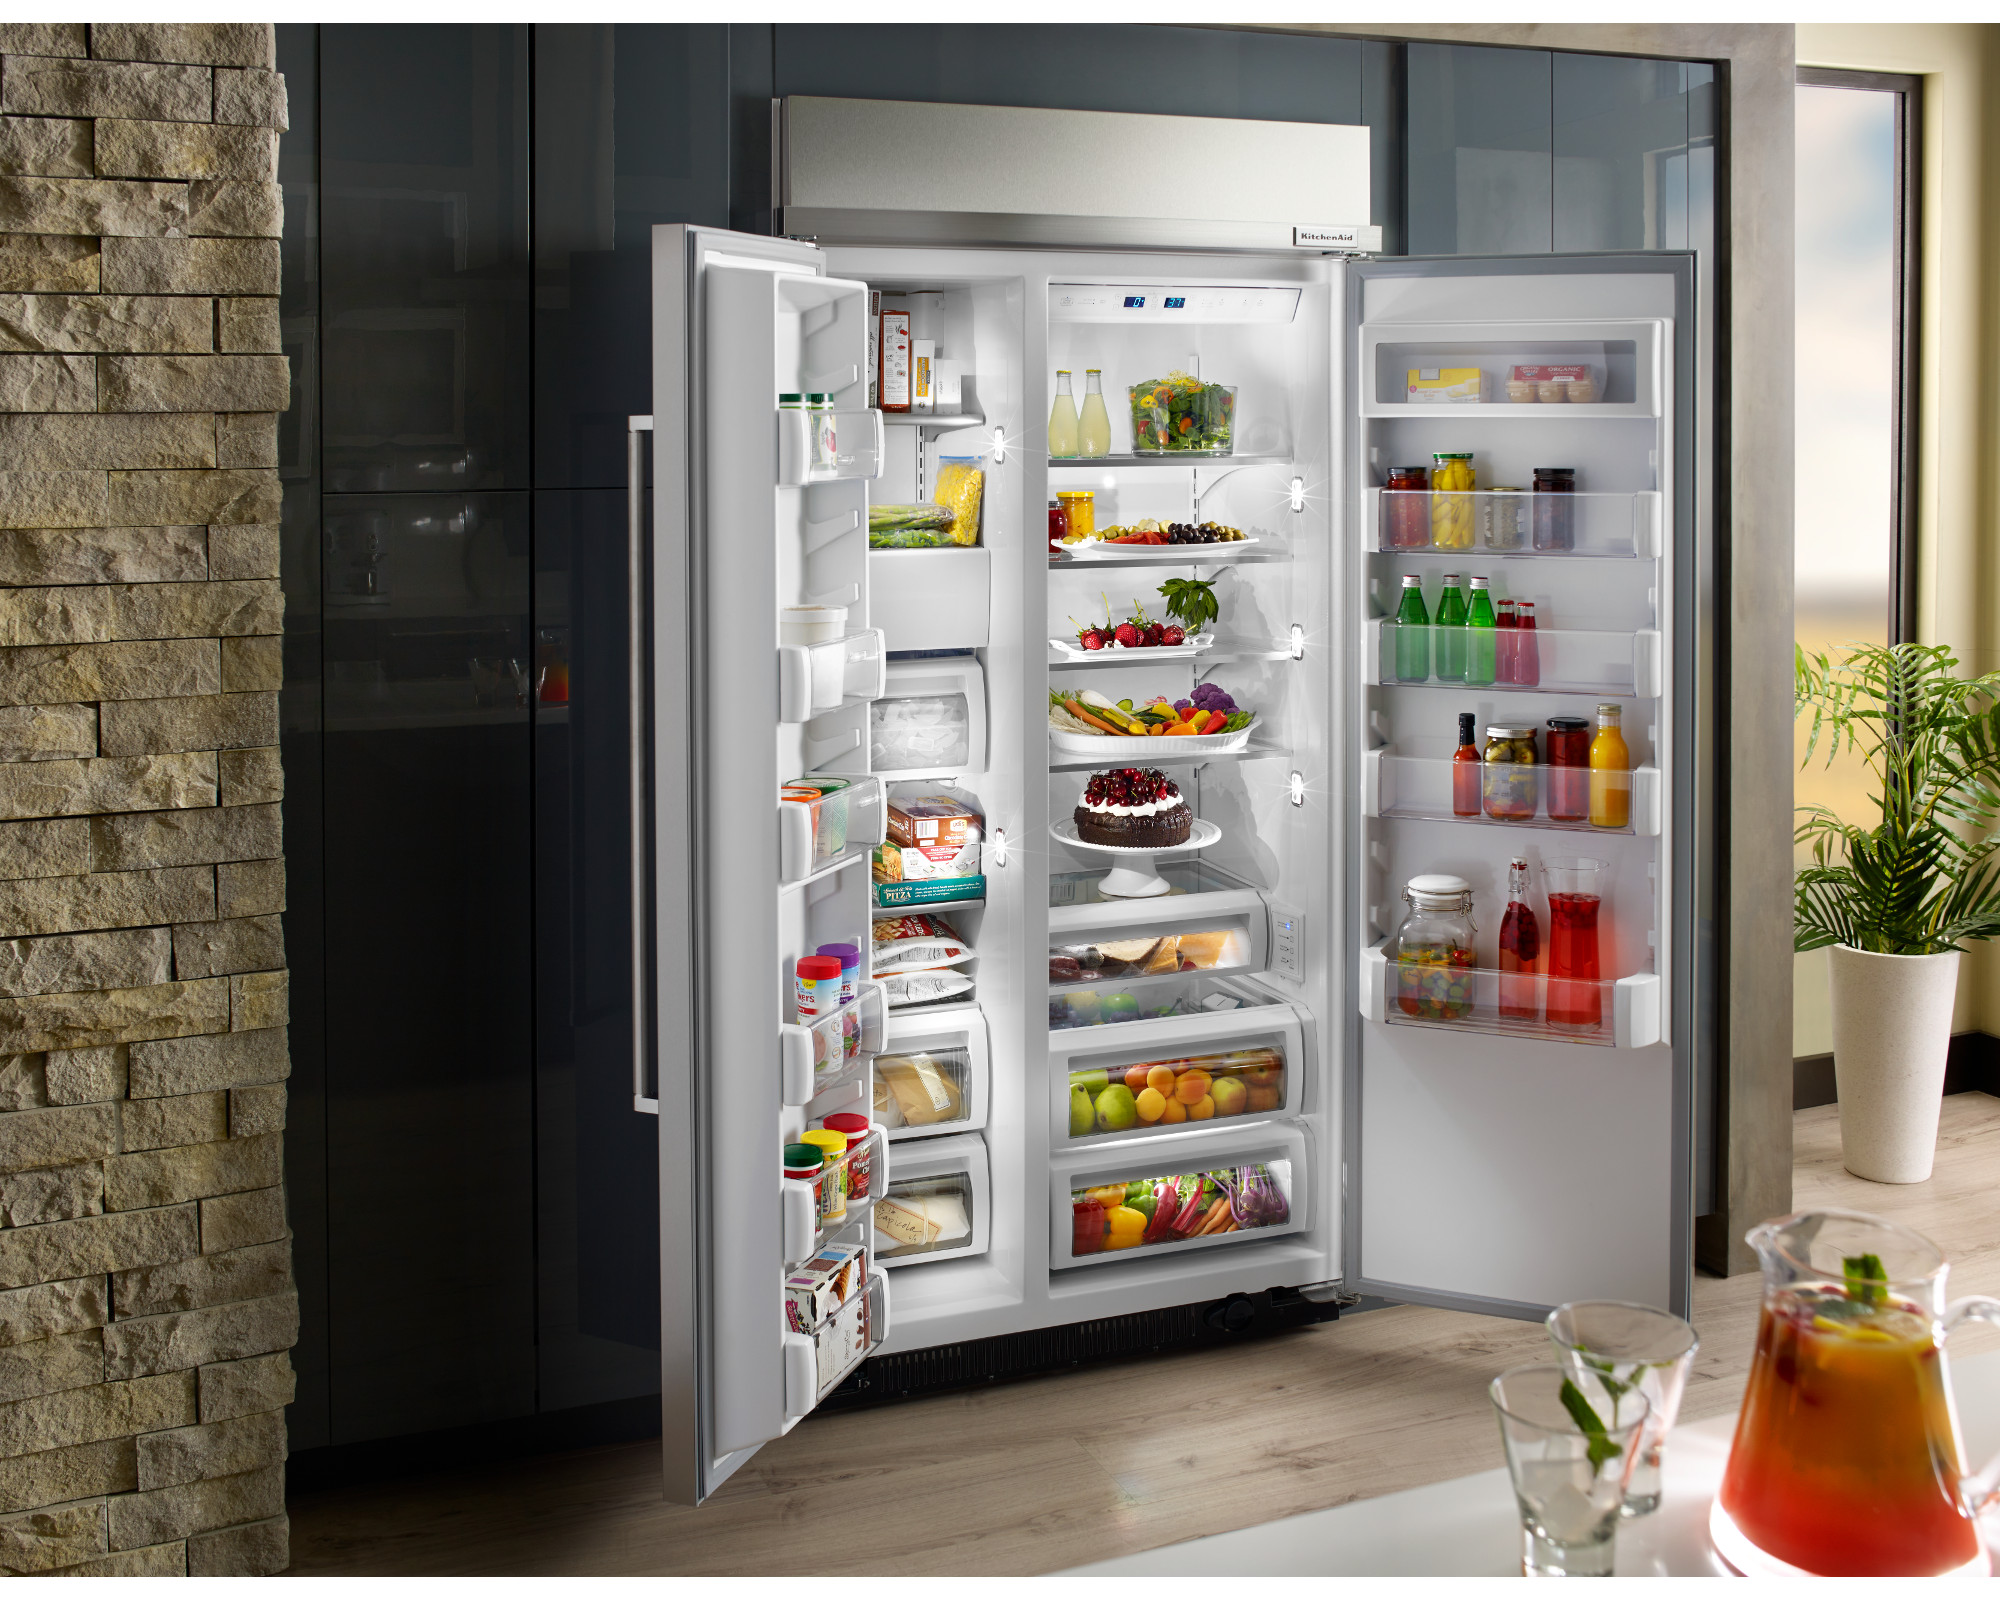 KitchenAid KBSN602ESS 25.5 cu. ft. Built-In Side-by-Side Refrigerator - Stainless Steel